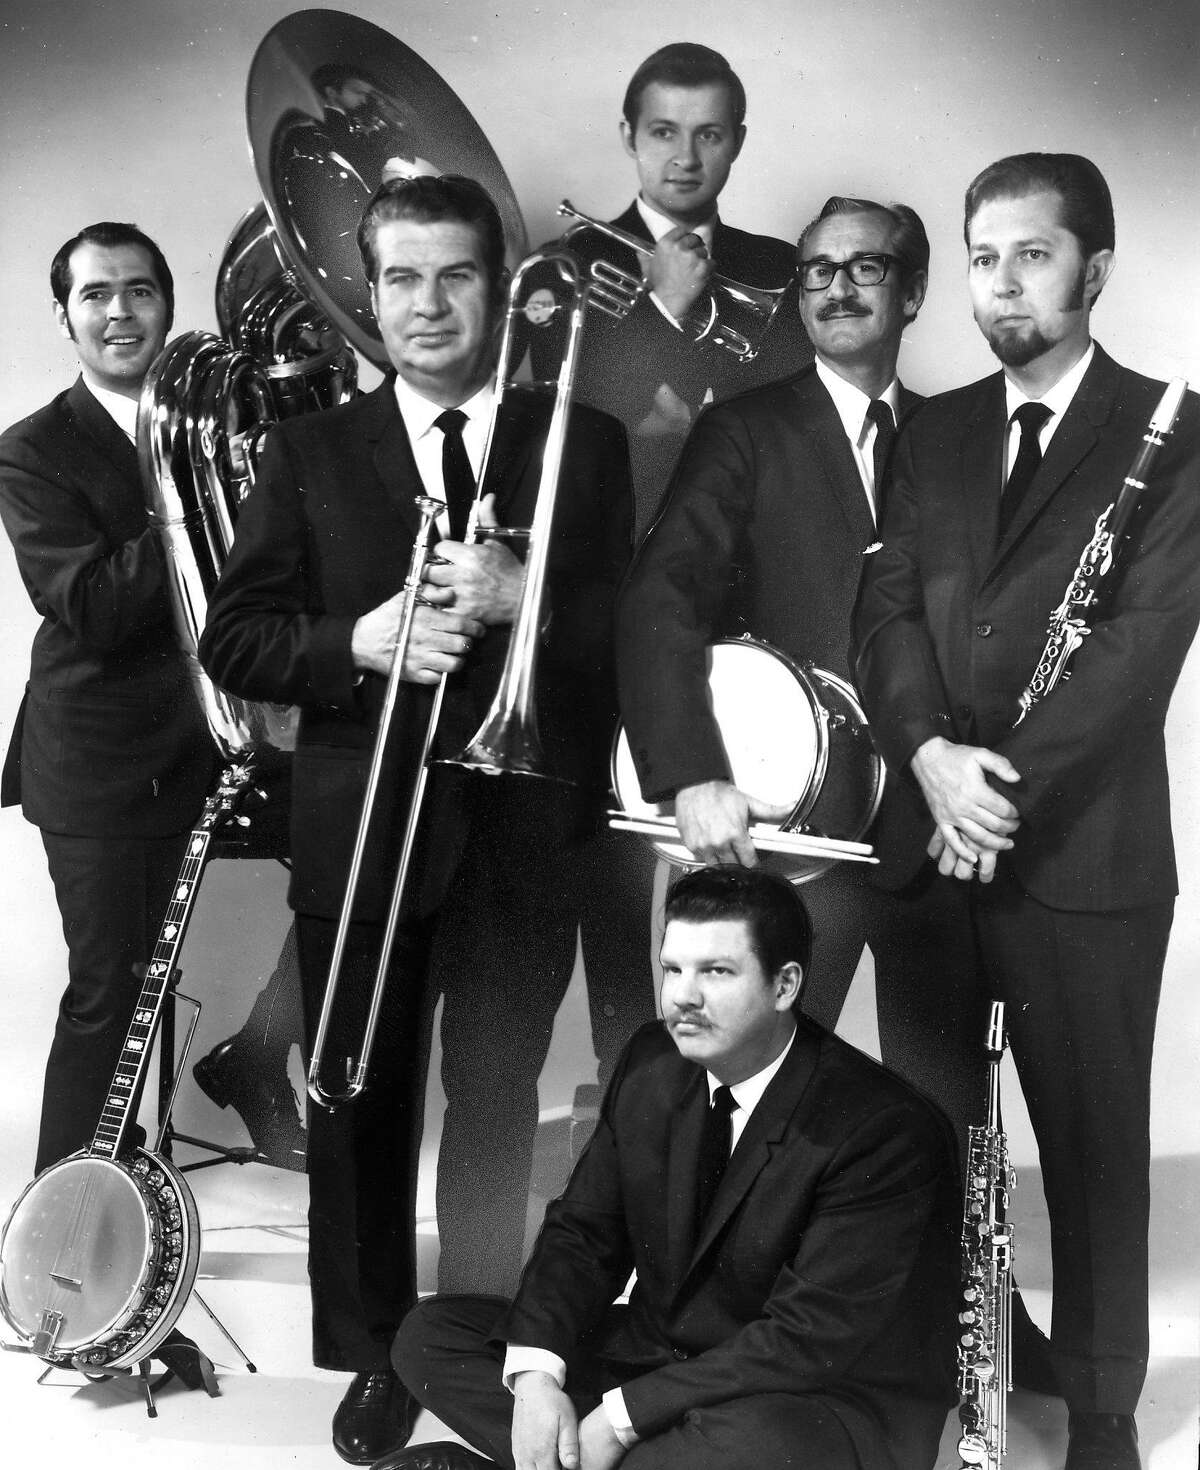 The Turk Murphy jazz band, including (l to r ) Jim Maihack (tuba), Turk Murphy, Phil Howe (clarinet), Smokey Stover (drums) Leon Oakley (cornet), and seated piano man Pete Clute. The group entertains nightly at Earthquake McGoon's Handout photo Photo ran 09/20/1970 Sunday Datebook p. 28